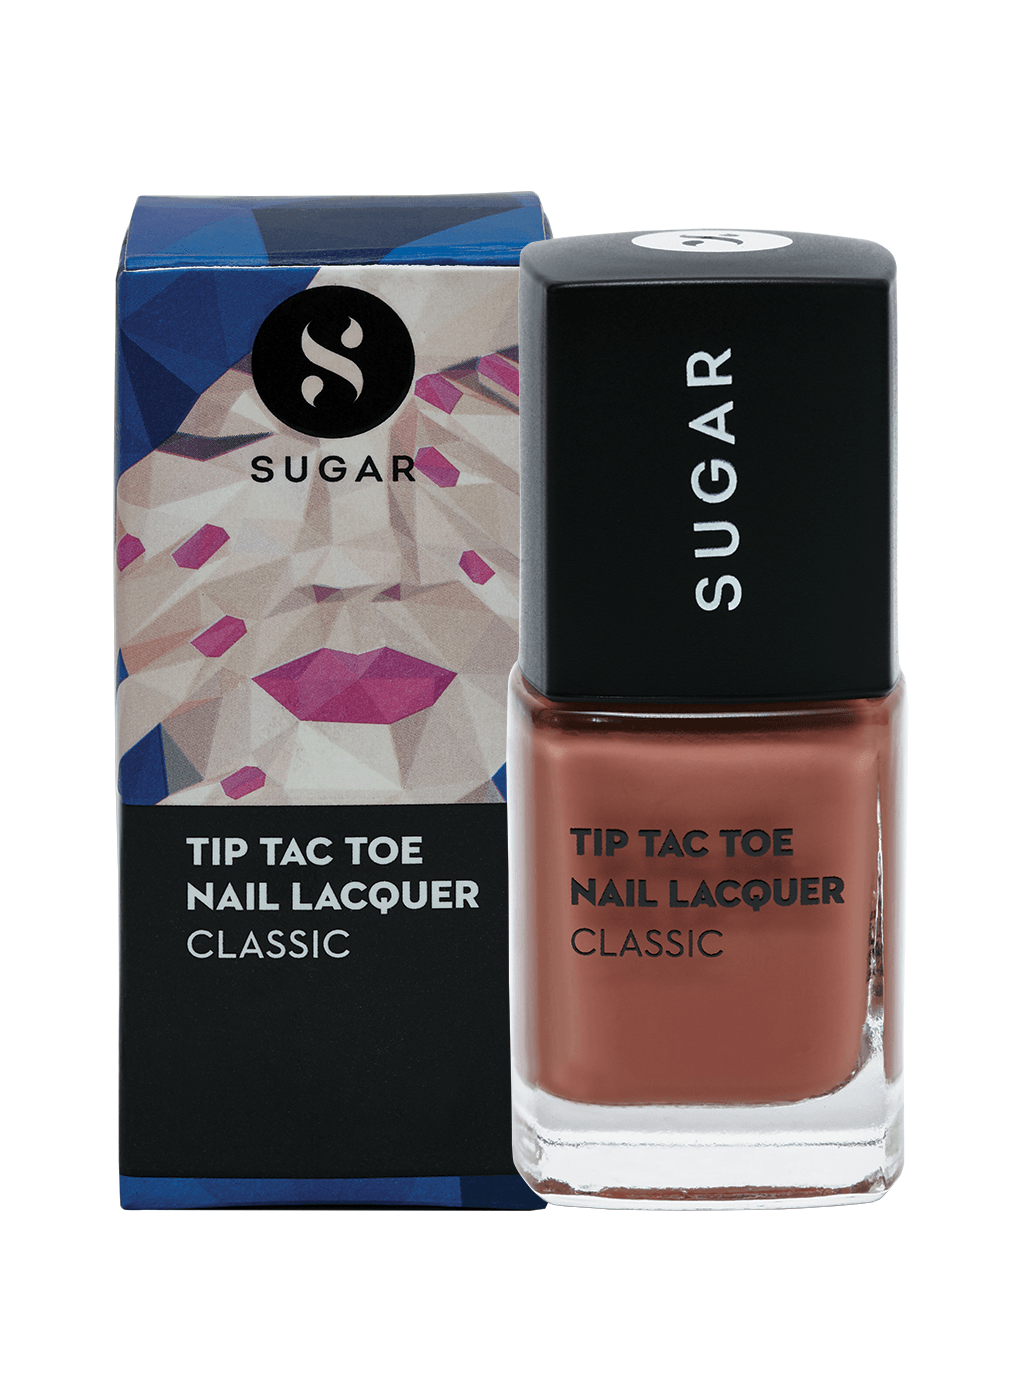 Tip Tac Toe Nail Lacquer - 006 Cookie Cutter (Medium Brown)